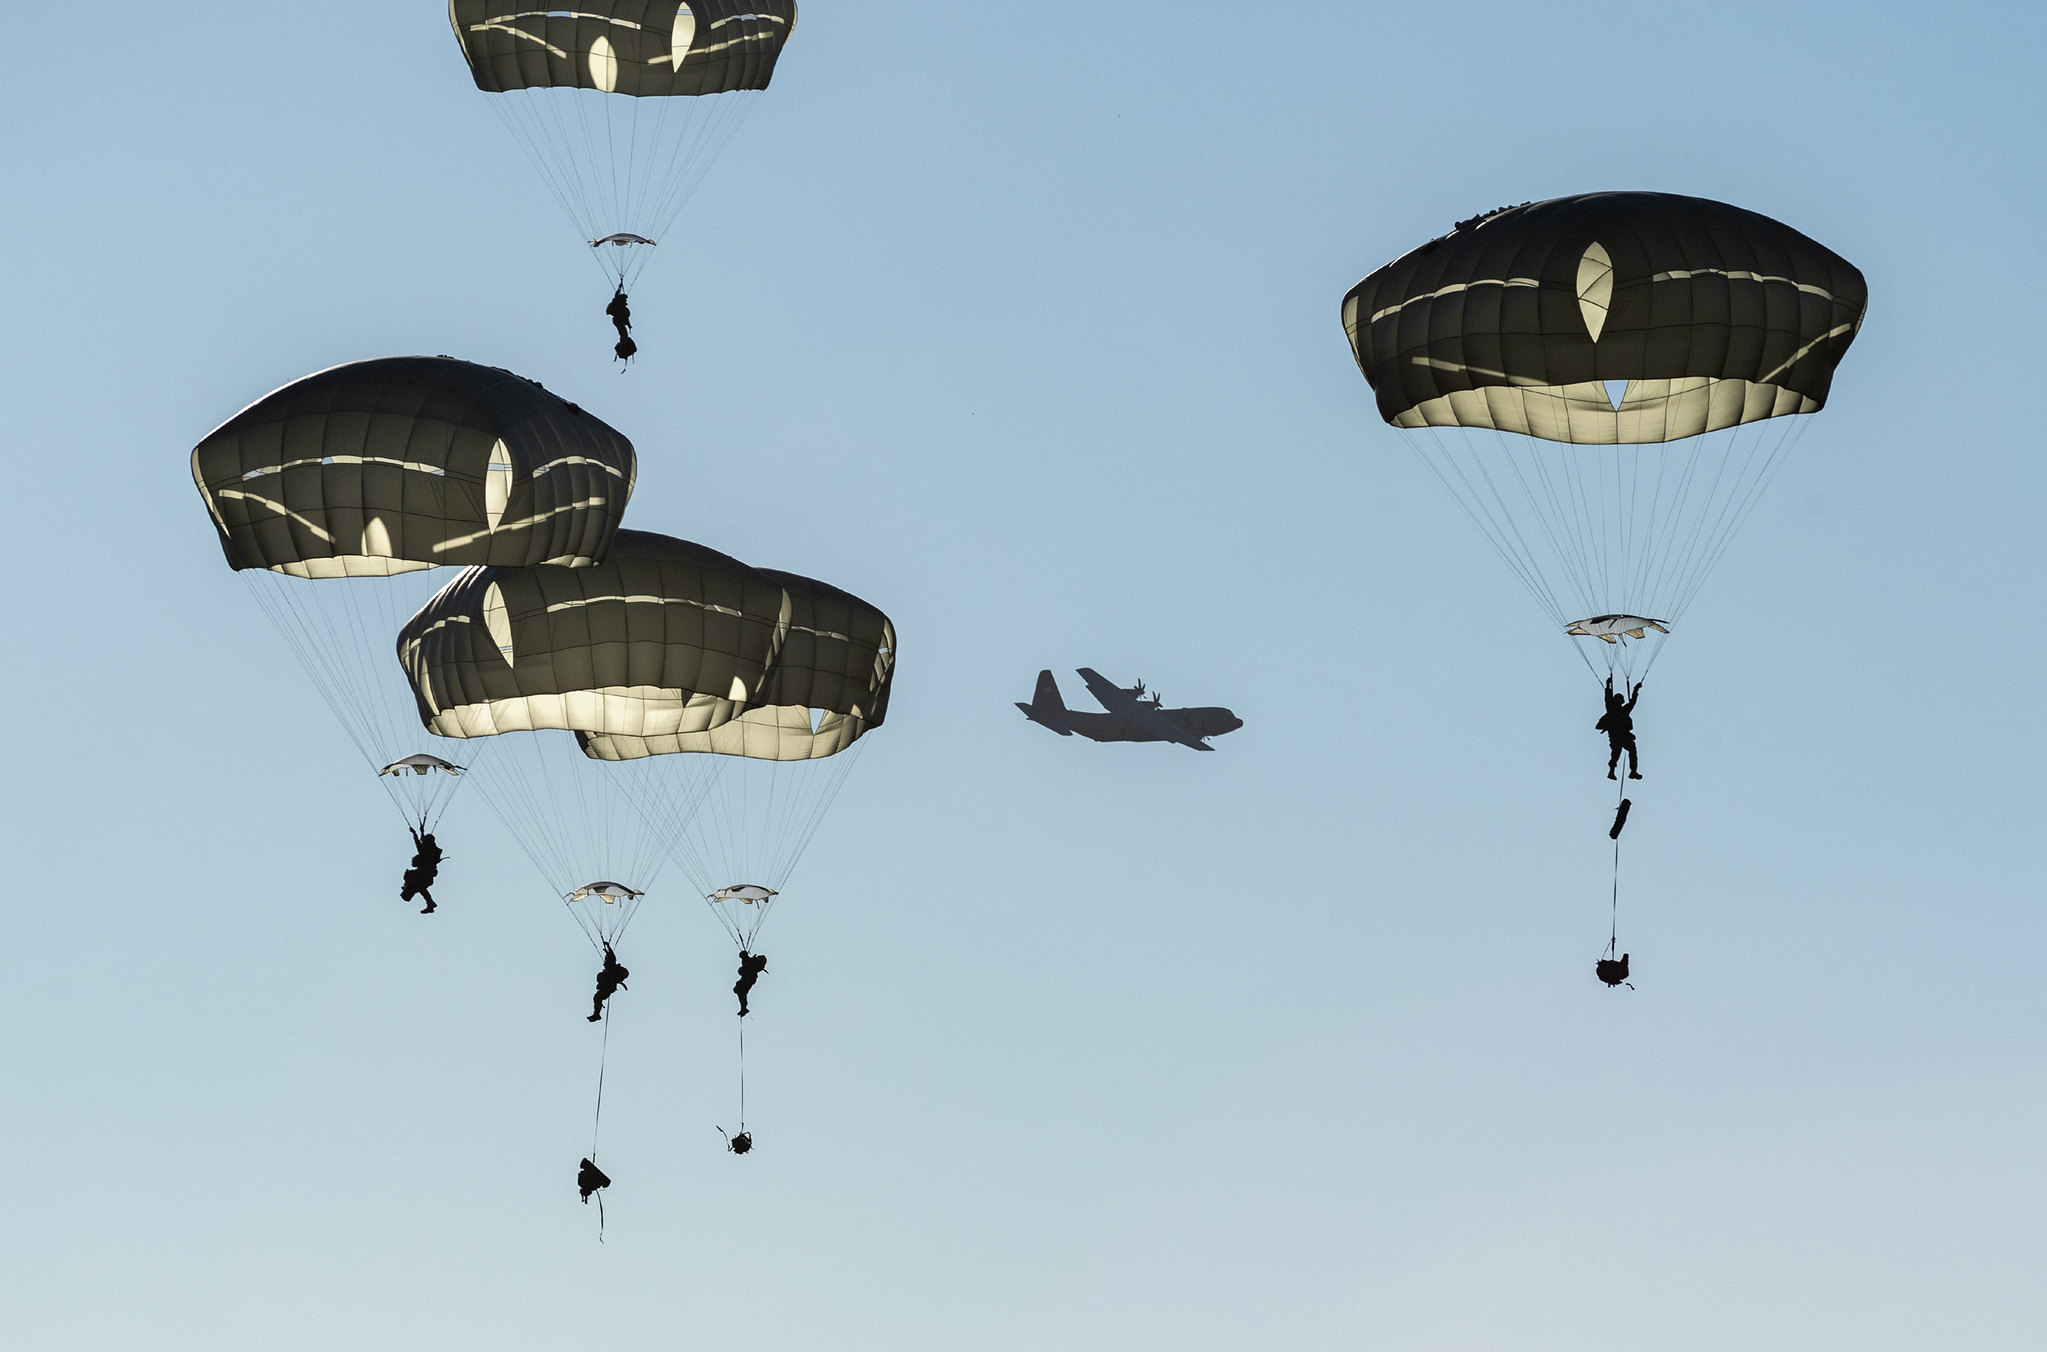 Paratroopers descend over Malemute Drop Zone after jumping from a U.S. Air Force C-130J Super Hercules during airborne training at Joint Base Elmendorf-Richardson, Alaska, Oct. 22, 2020. (Alejandro Pena/Air Force)